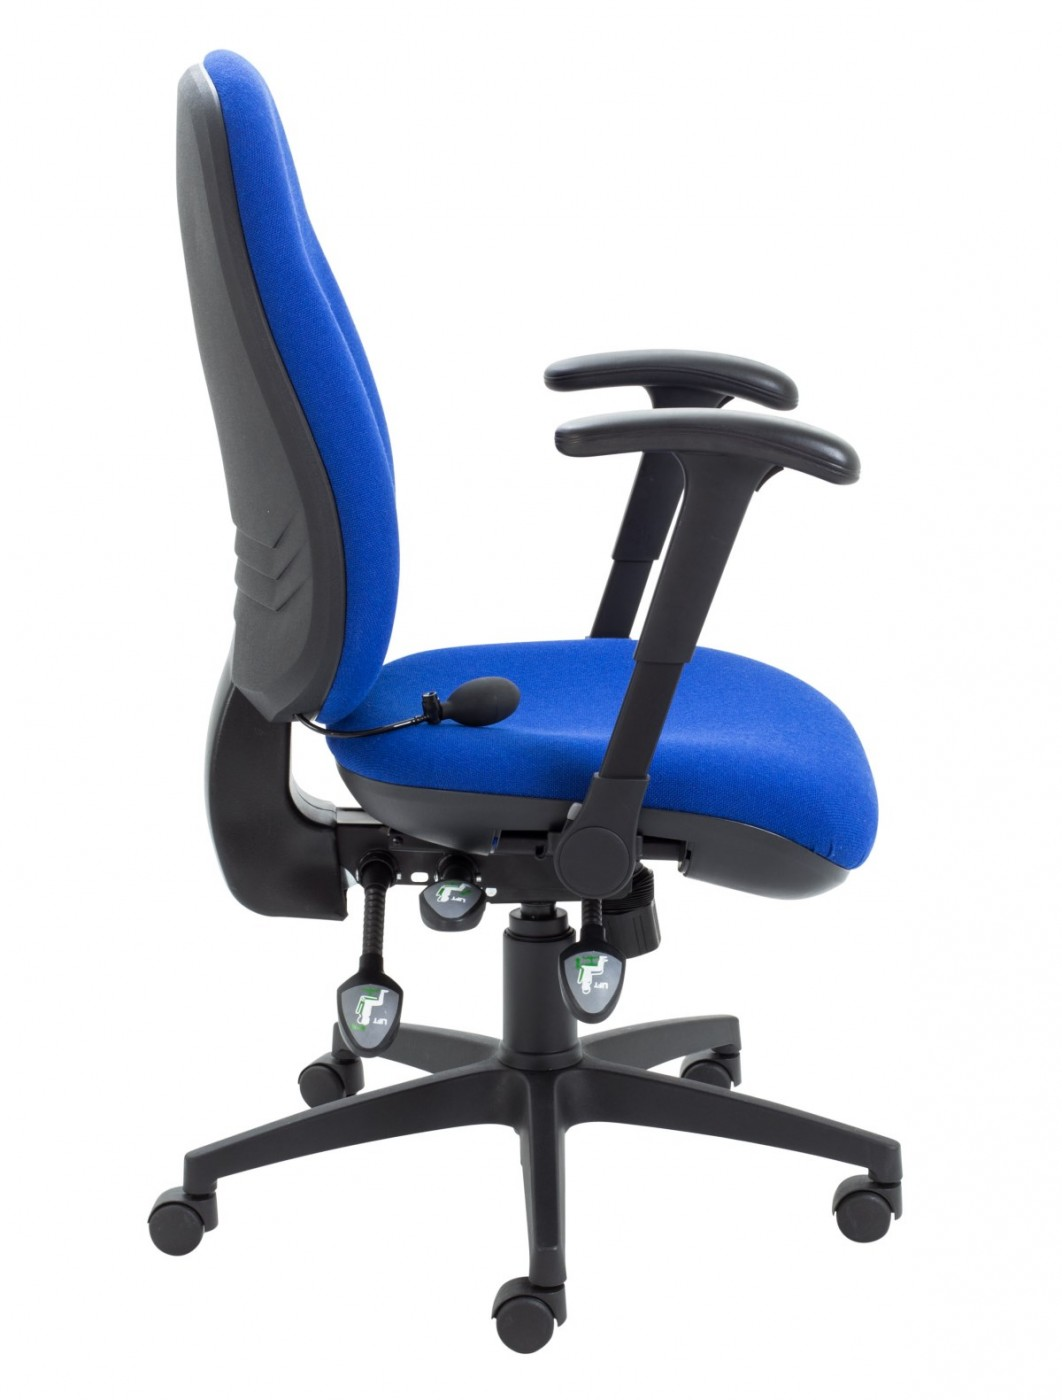 TC Office Concept Maxi Ergo Office Chair CH0808BL in Royal Blue